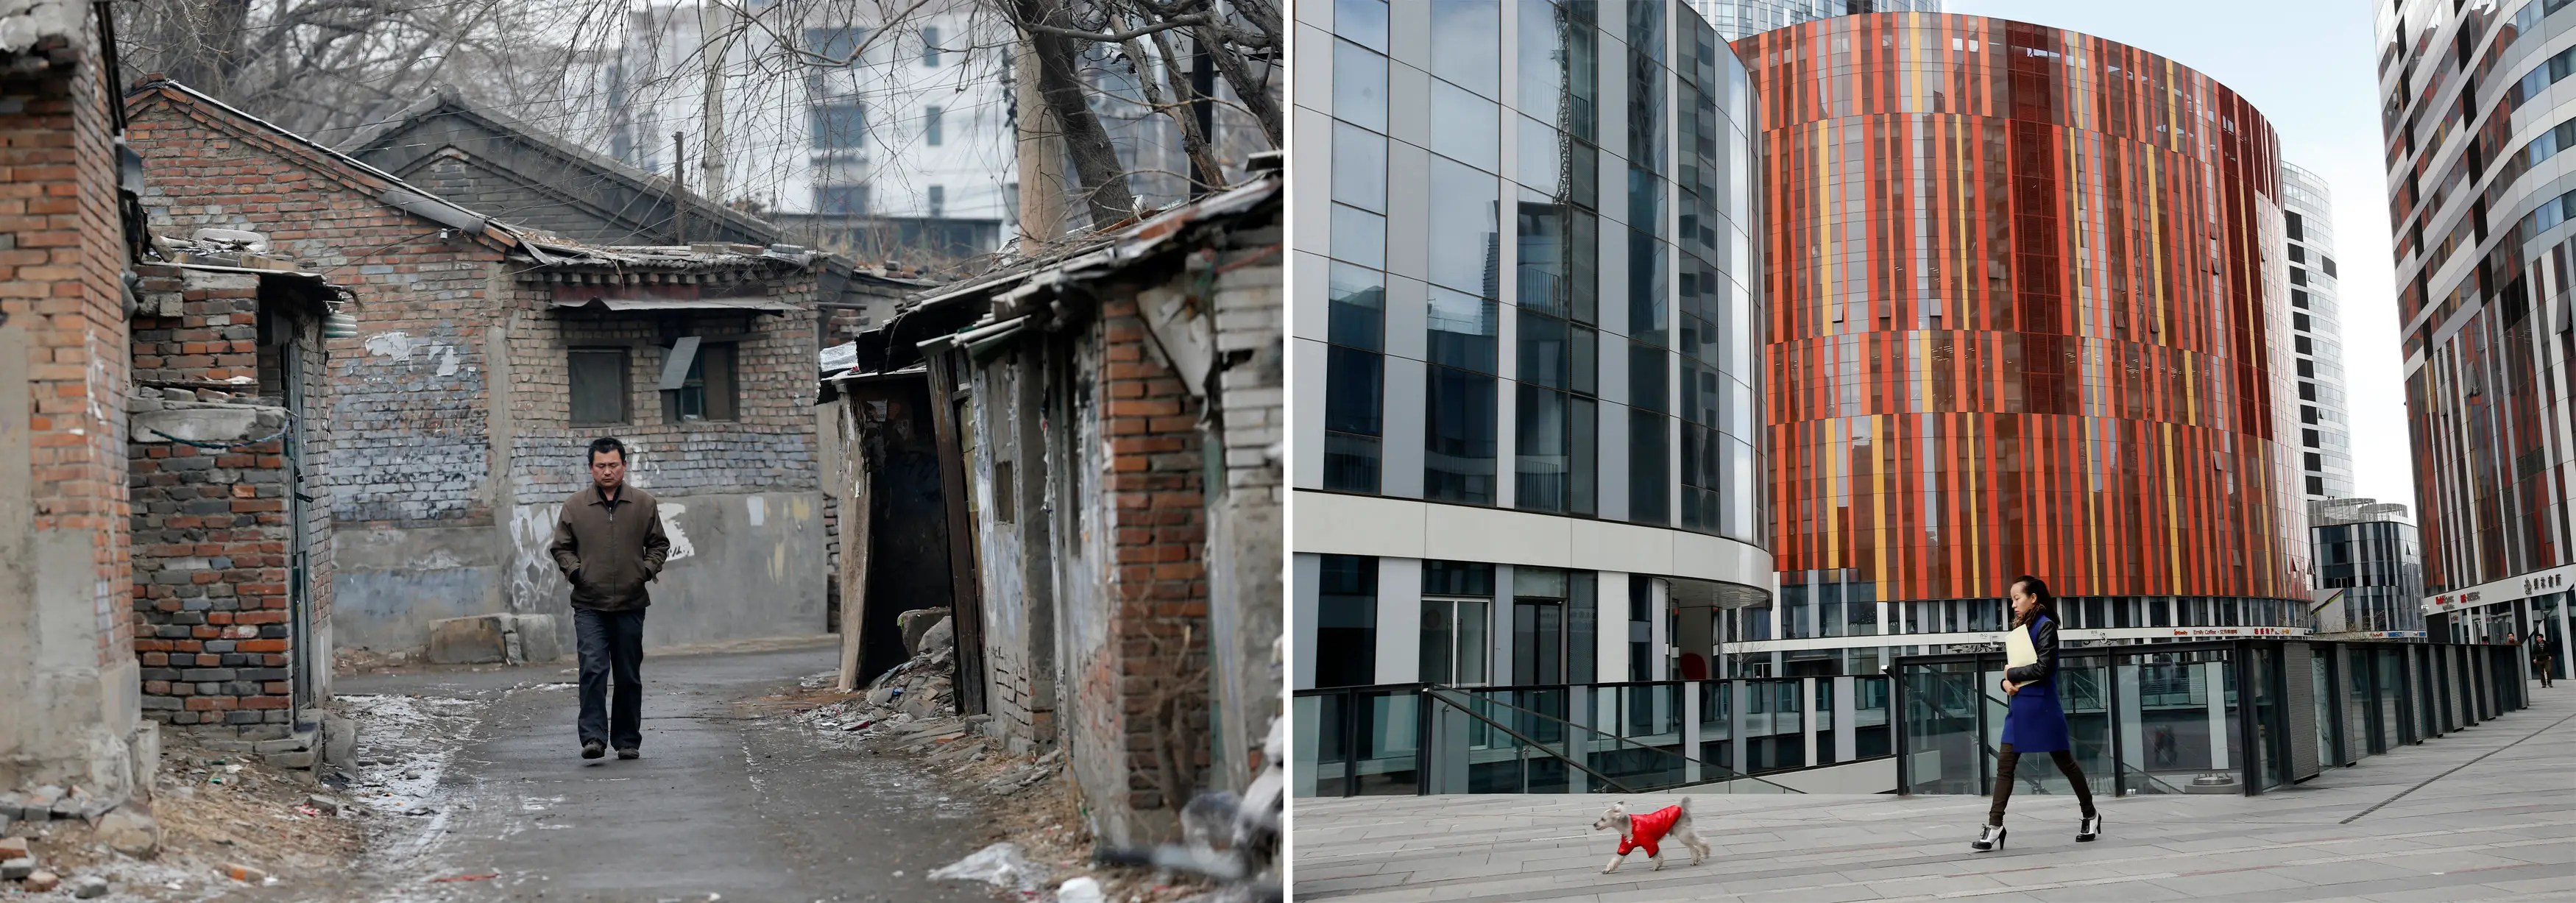 (L) A man walks in a alley at a half-demolished, old residential site and (R) a woman walks with her pet dog at a wealthy residential and commercial complex.